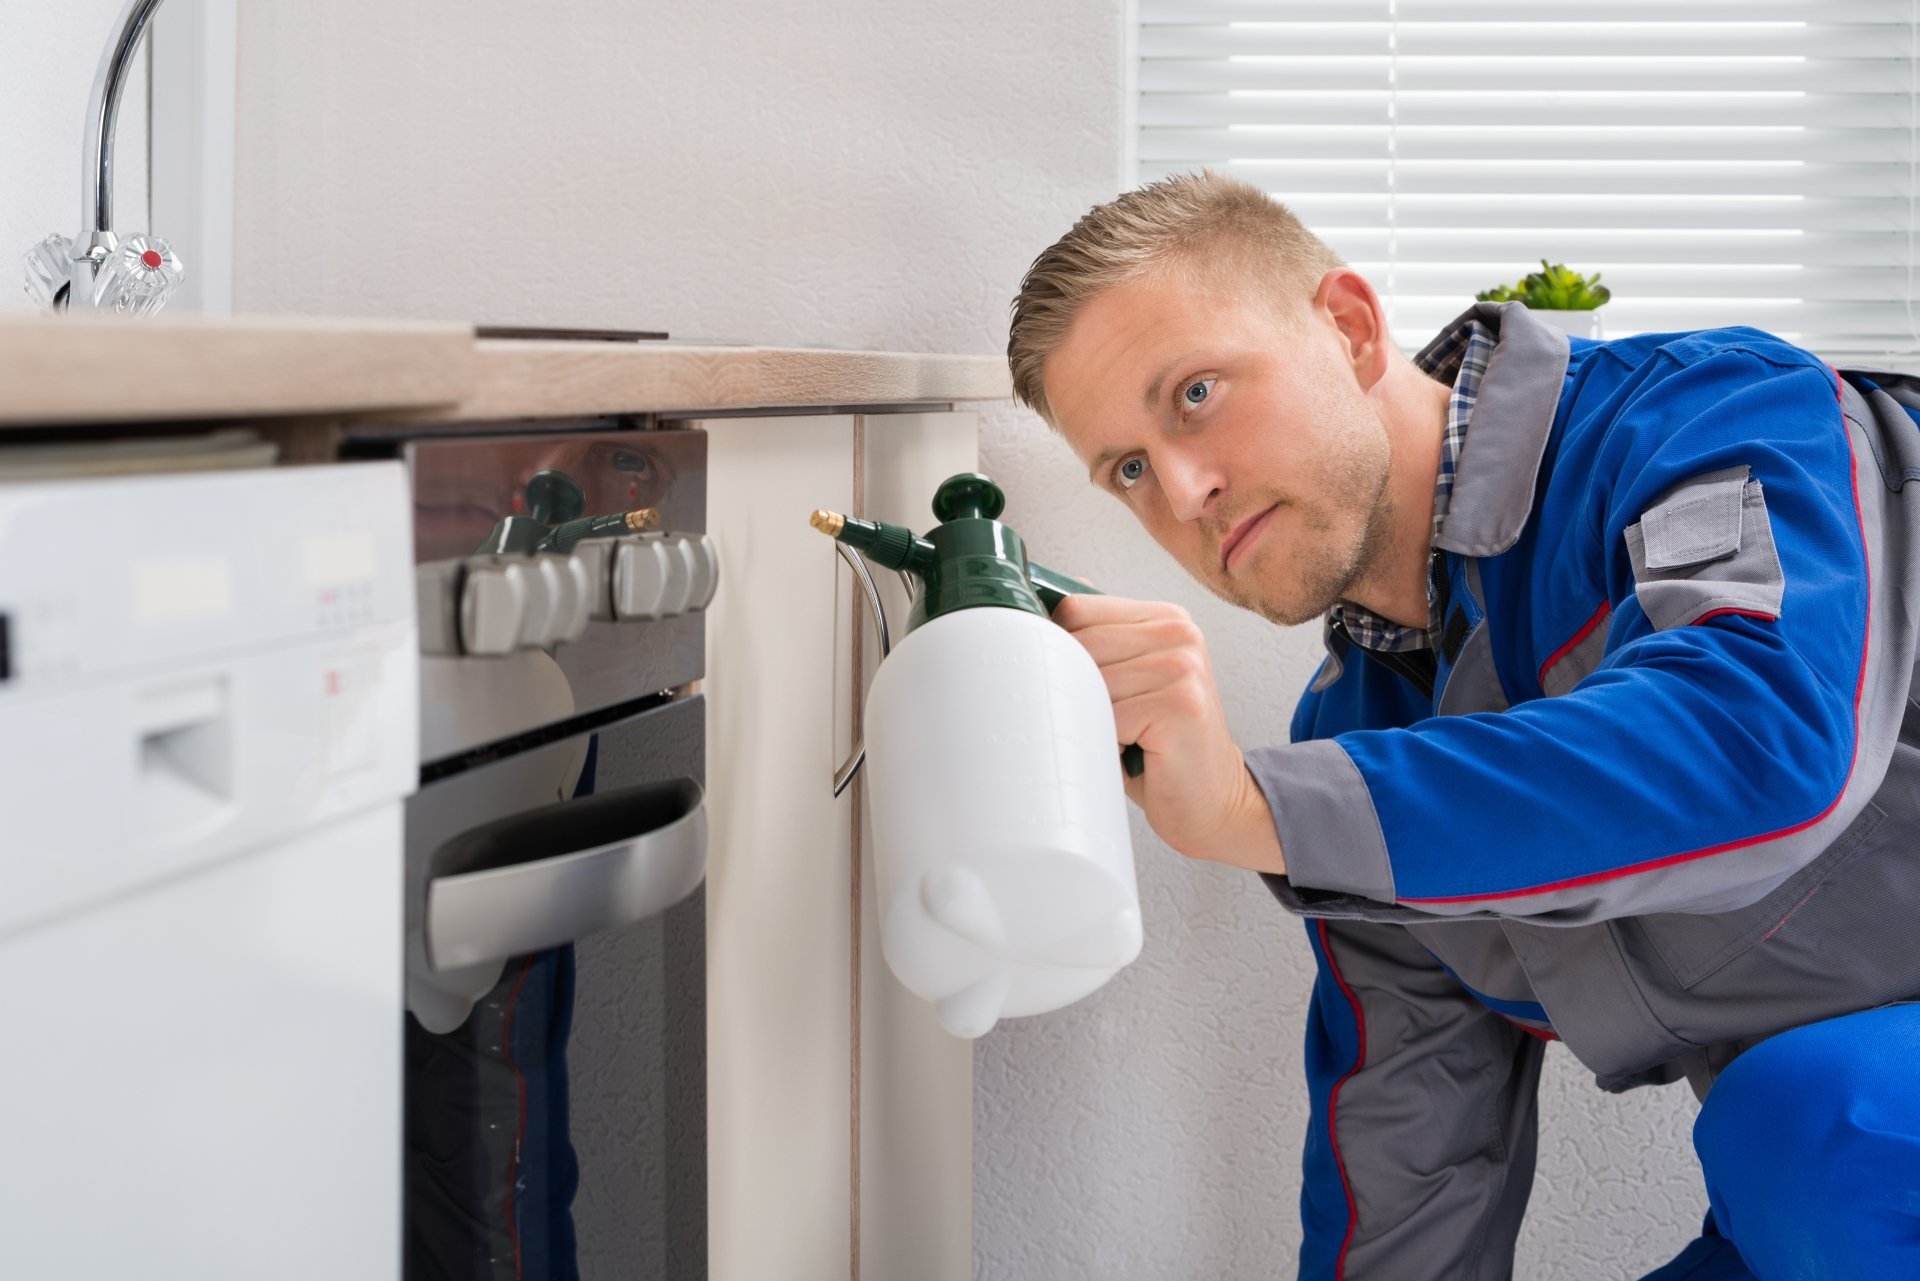 Pest Inspection, Pest Control in Clapham, SW4. Call Now 020 8166 9746